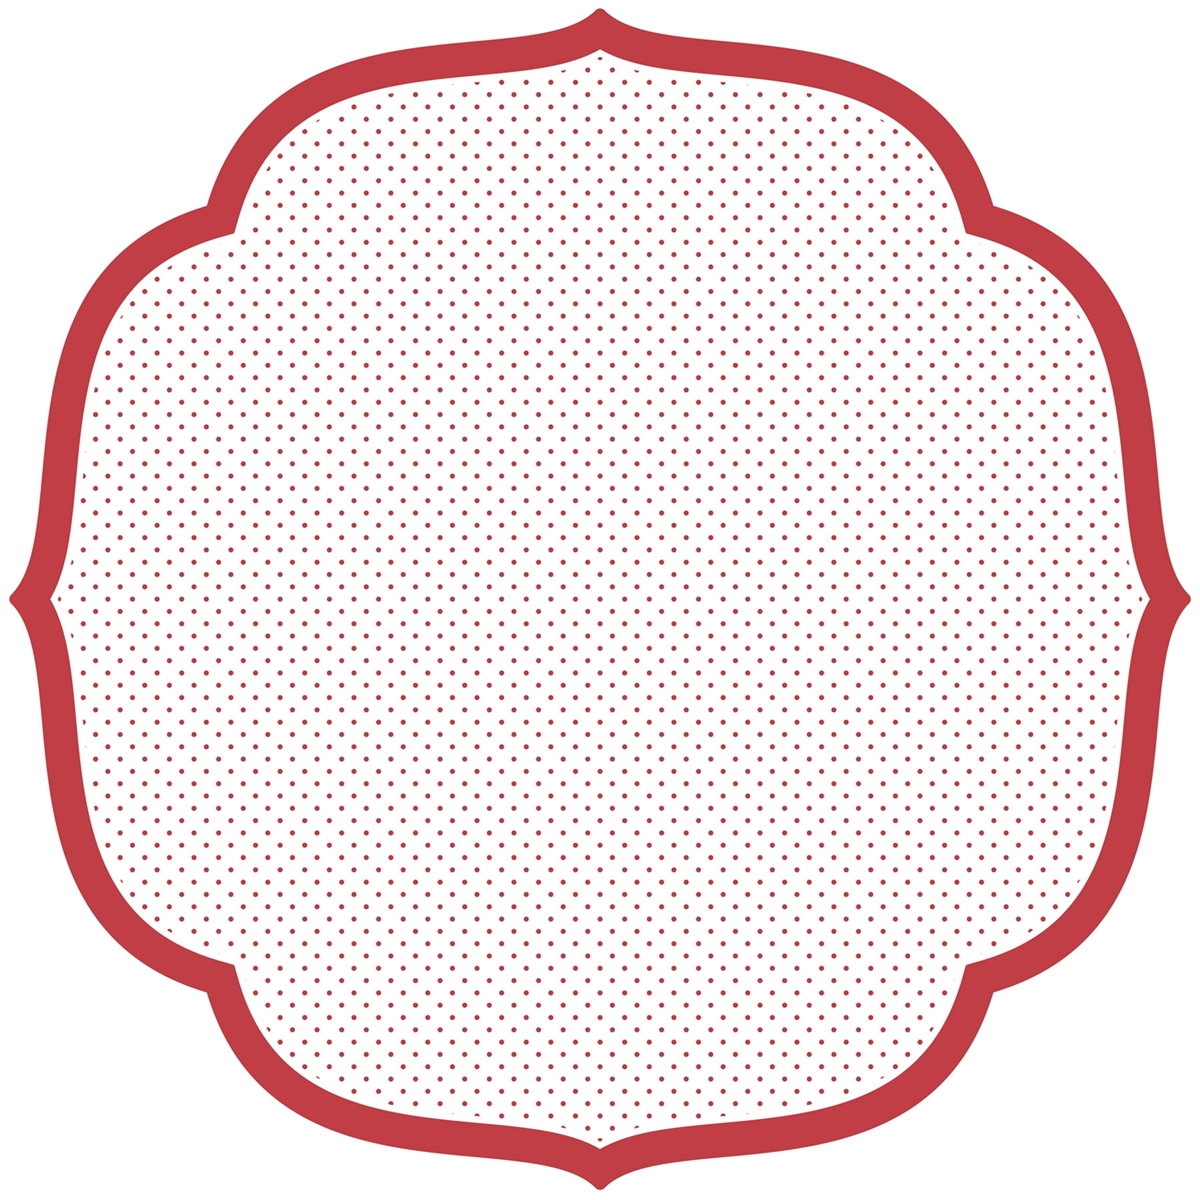 Paper Placemat Cut Red White Polka Dots